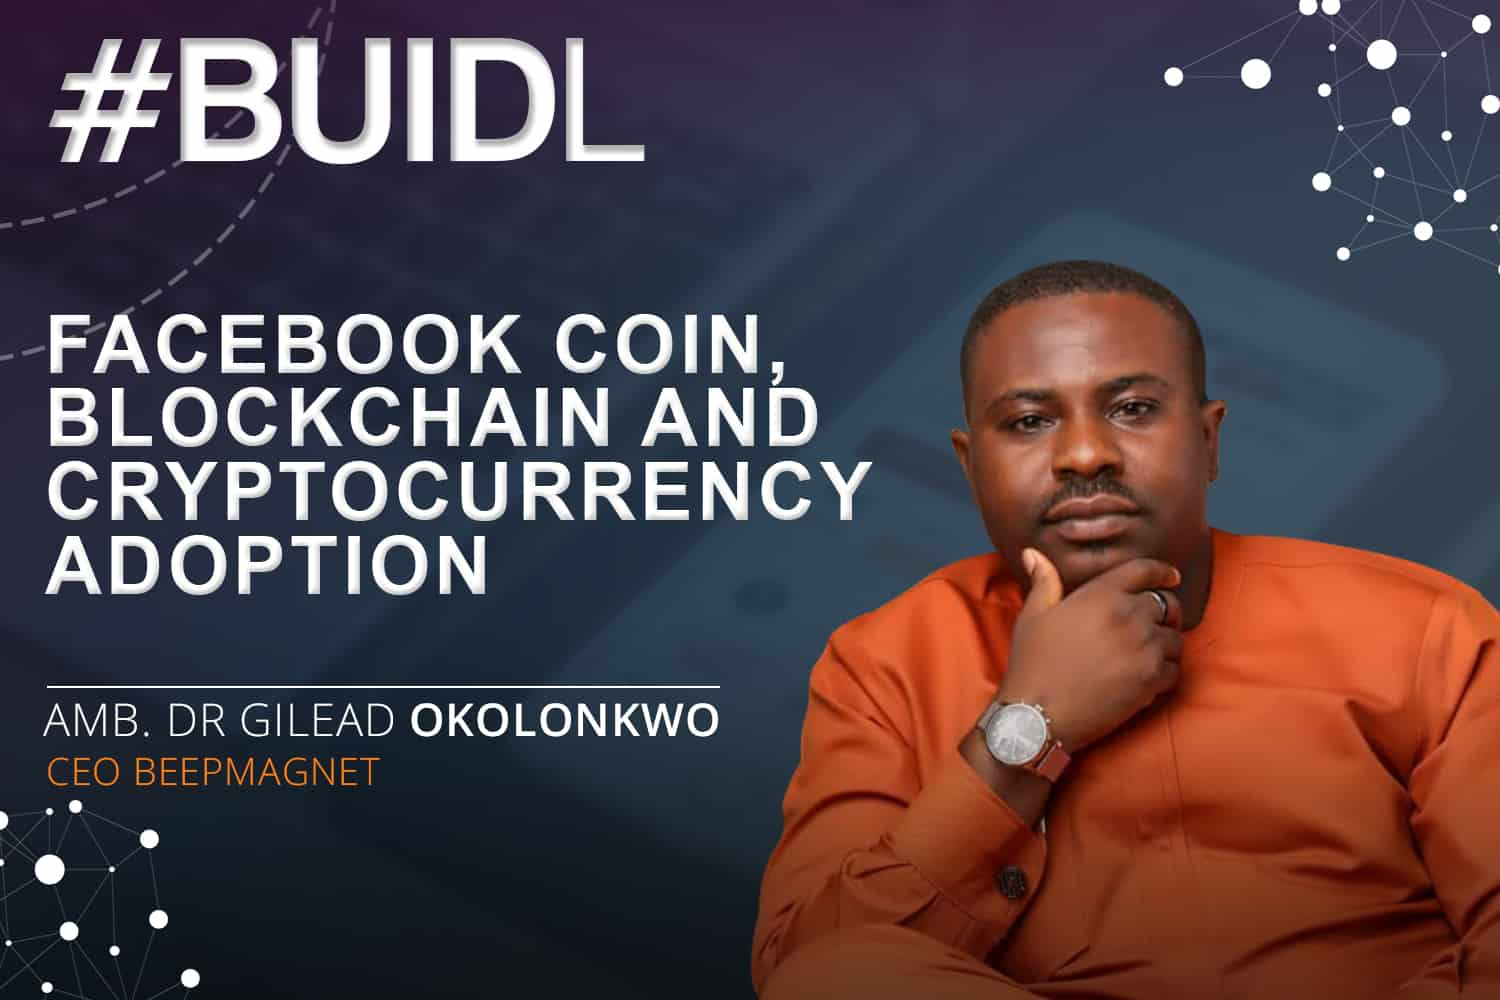 Facebook coin, blockchain and cryptocurrency adoption